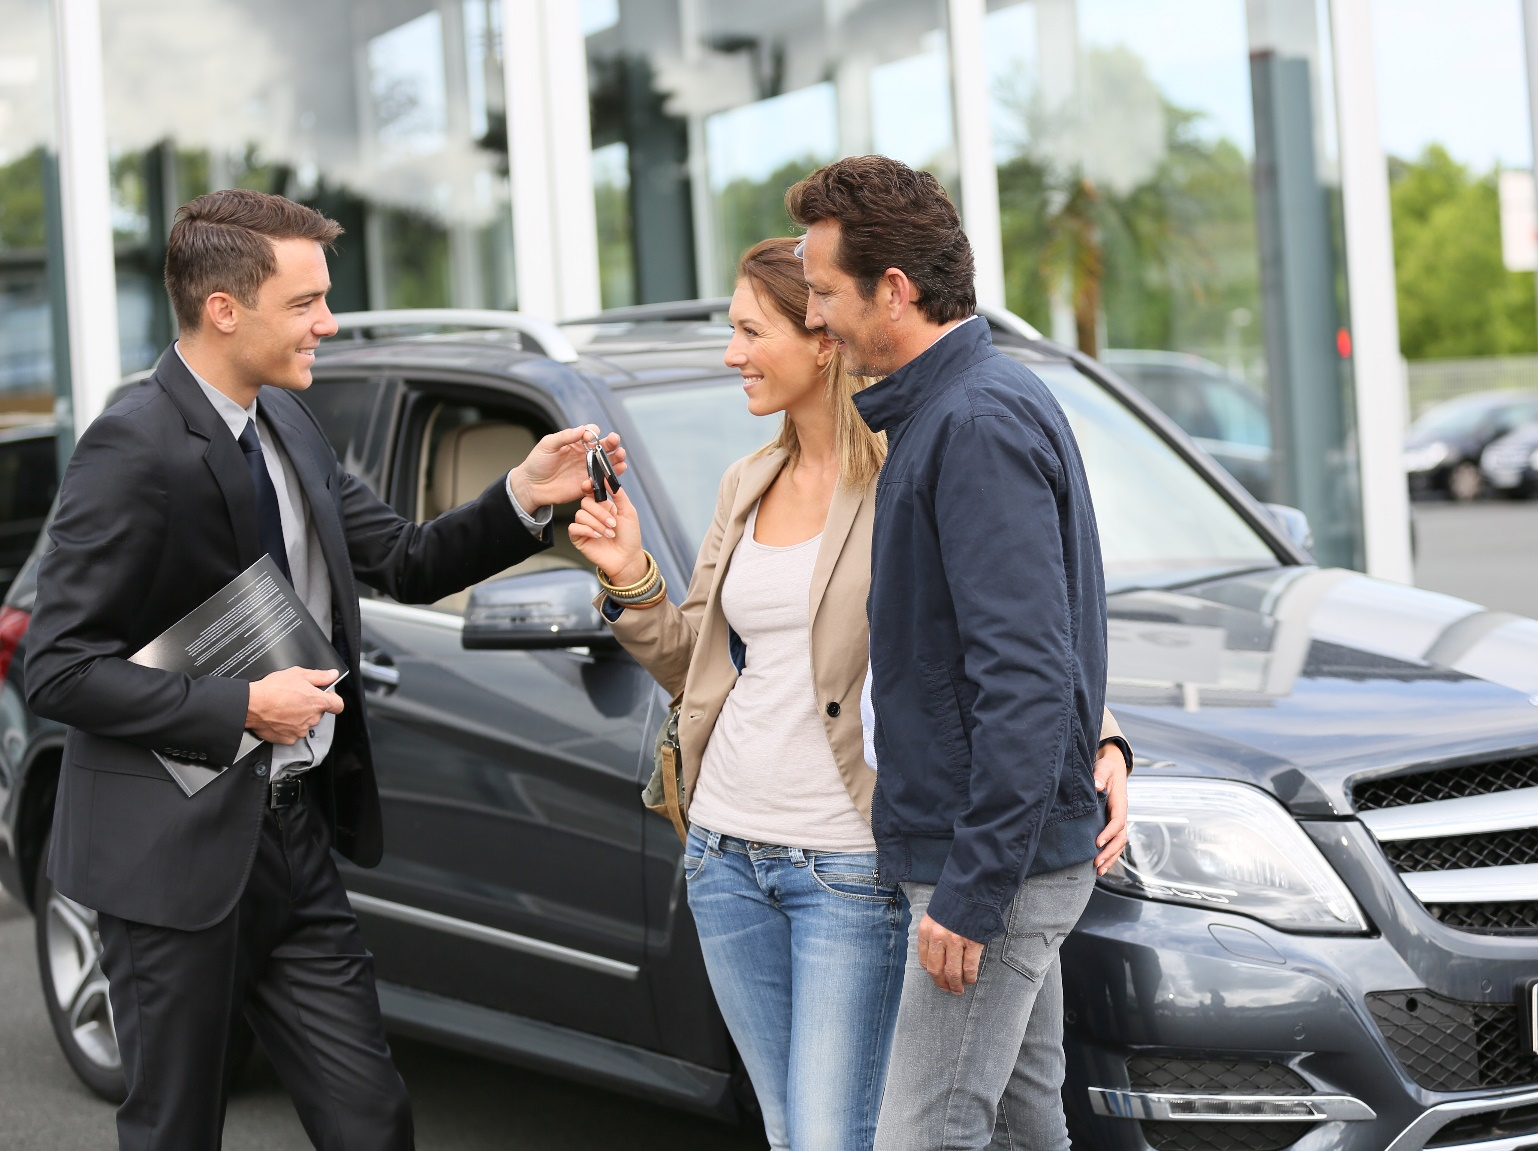 Automotive Dealerships Loyalty Programs For Customer Retention